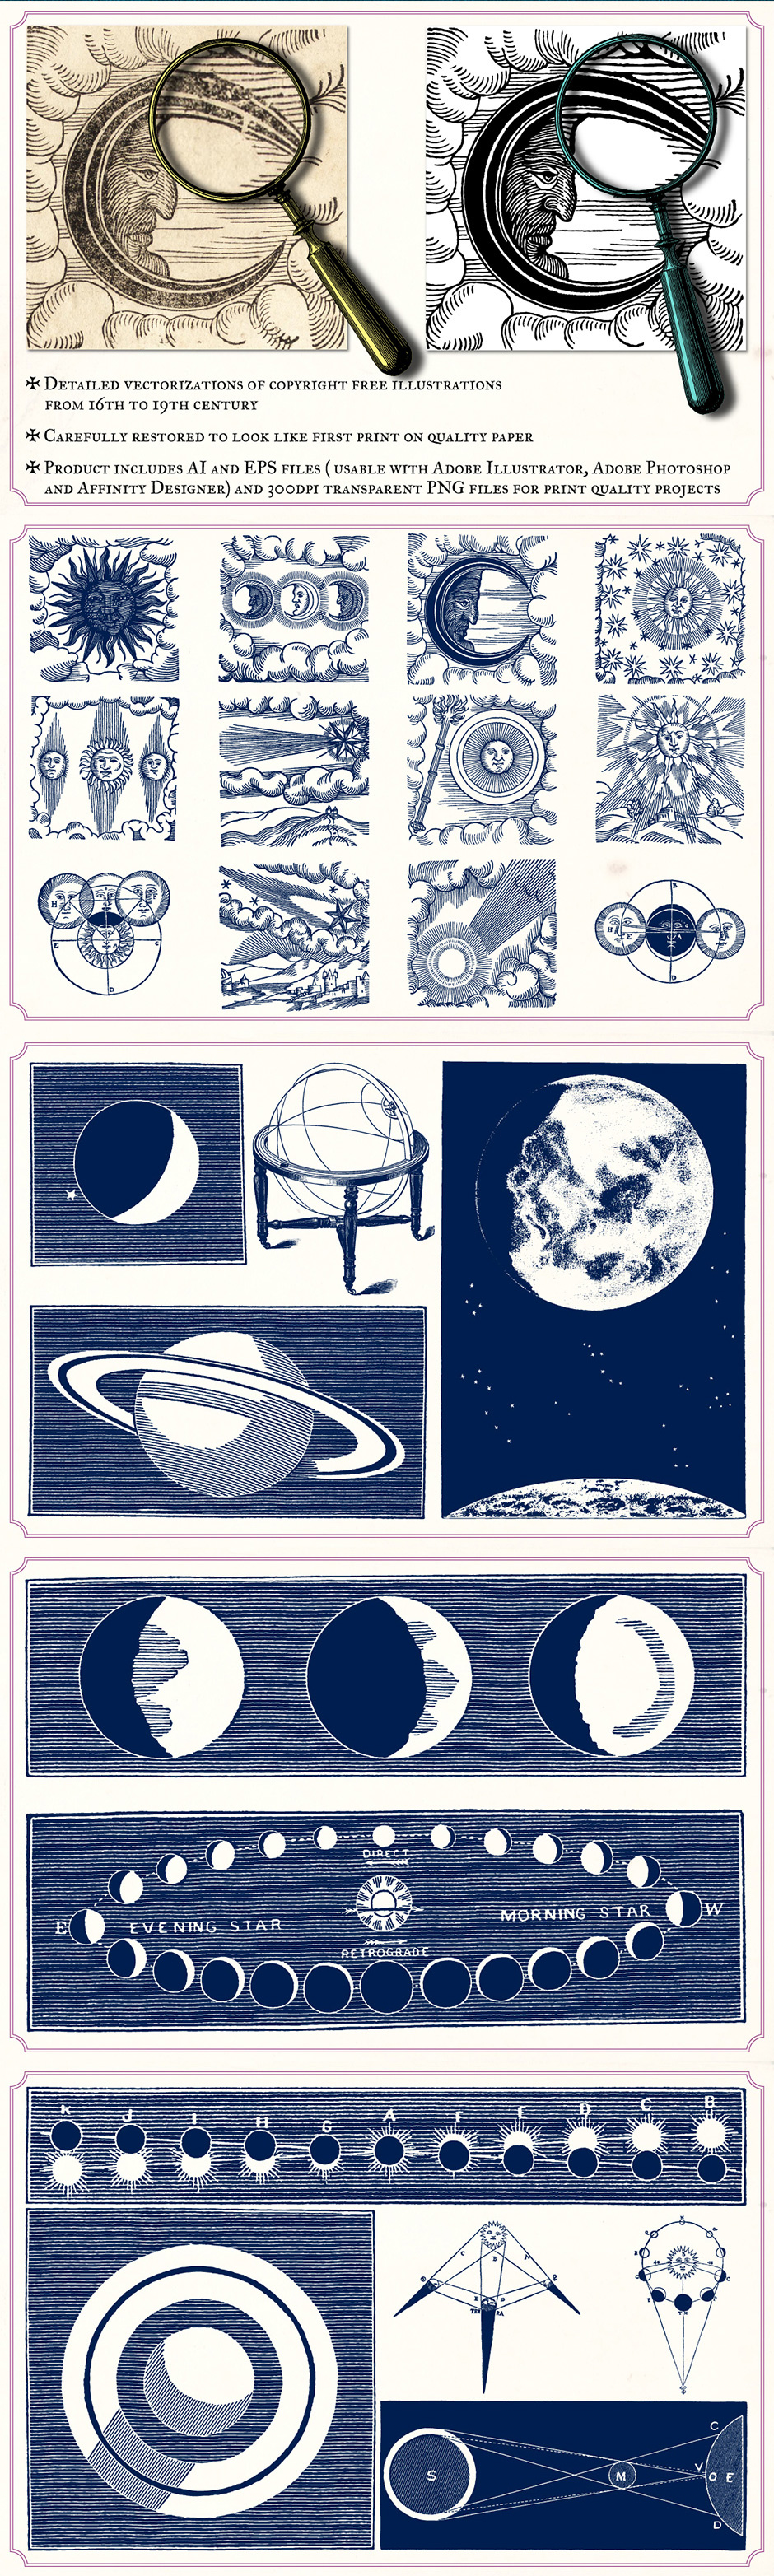 vintage space and astronomy illustrations